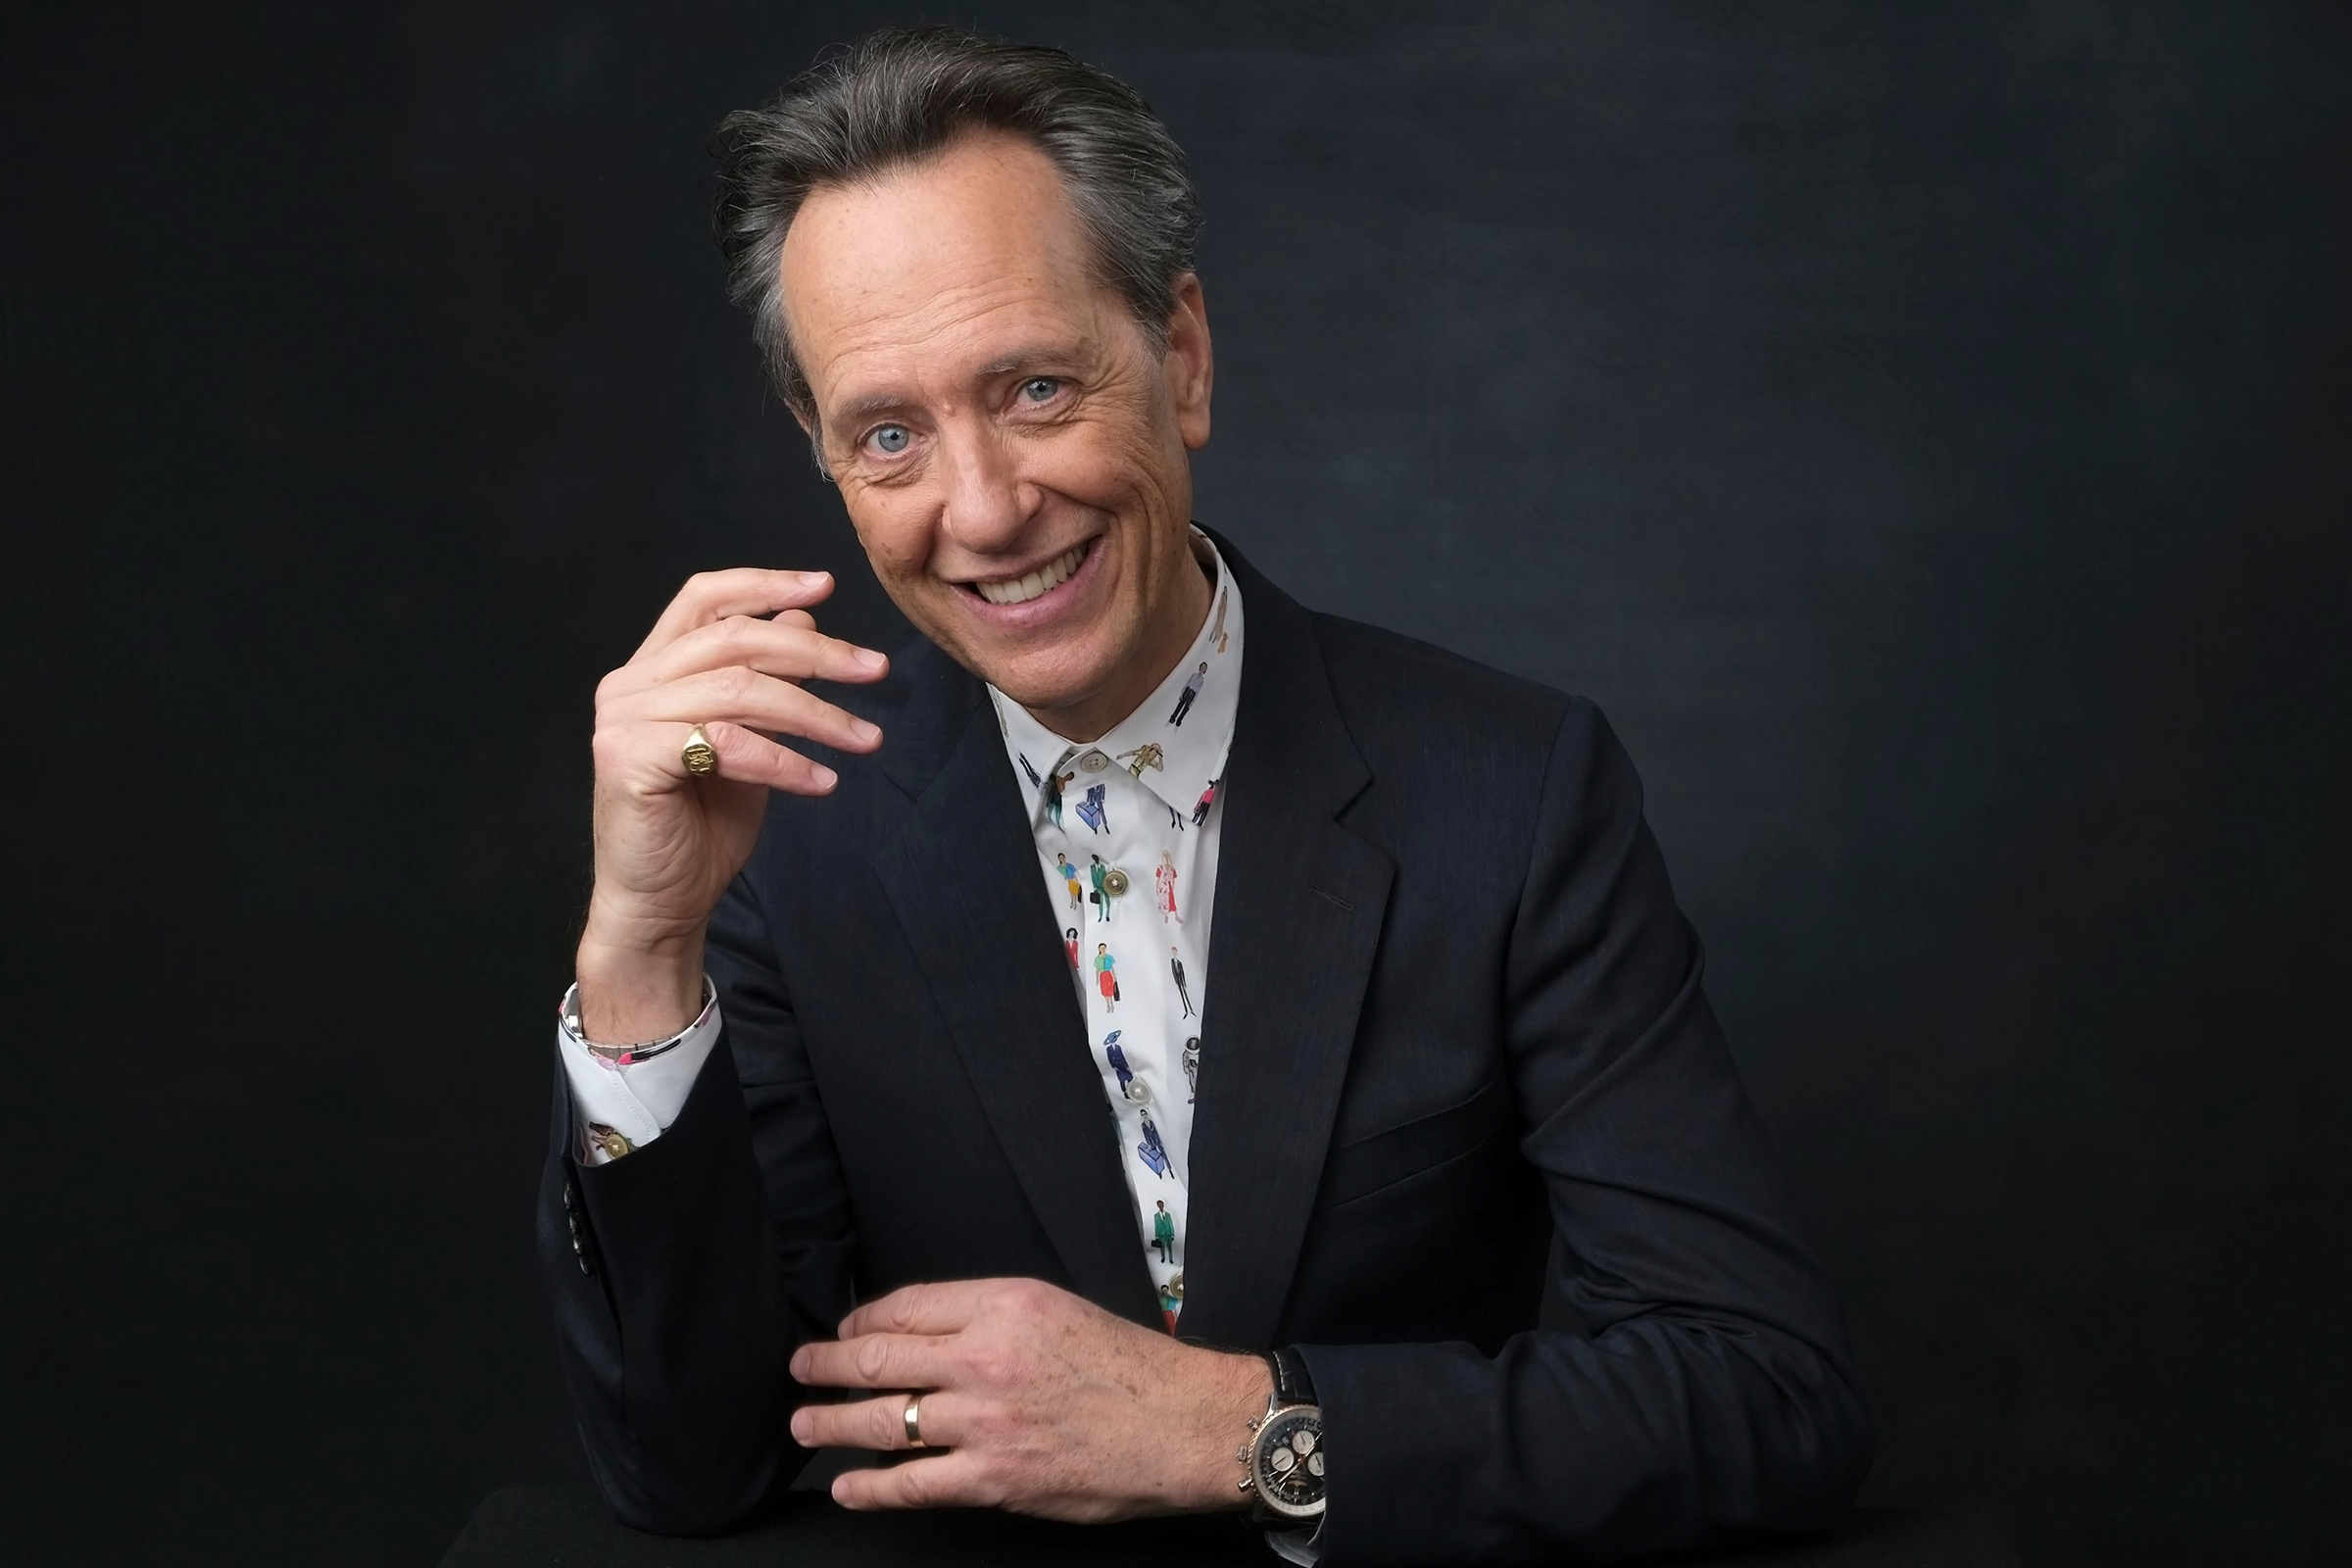 The 63-year old son of father (?) and mother(?) Richard E. Grant in 2021 photo. Richard E. Grant earned a  million dollar salary - leaving the net worth at  million in 2021